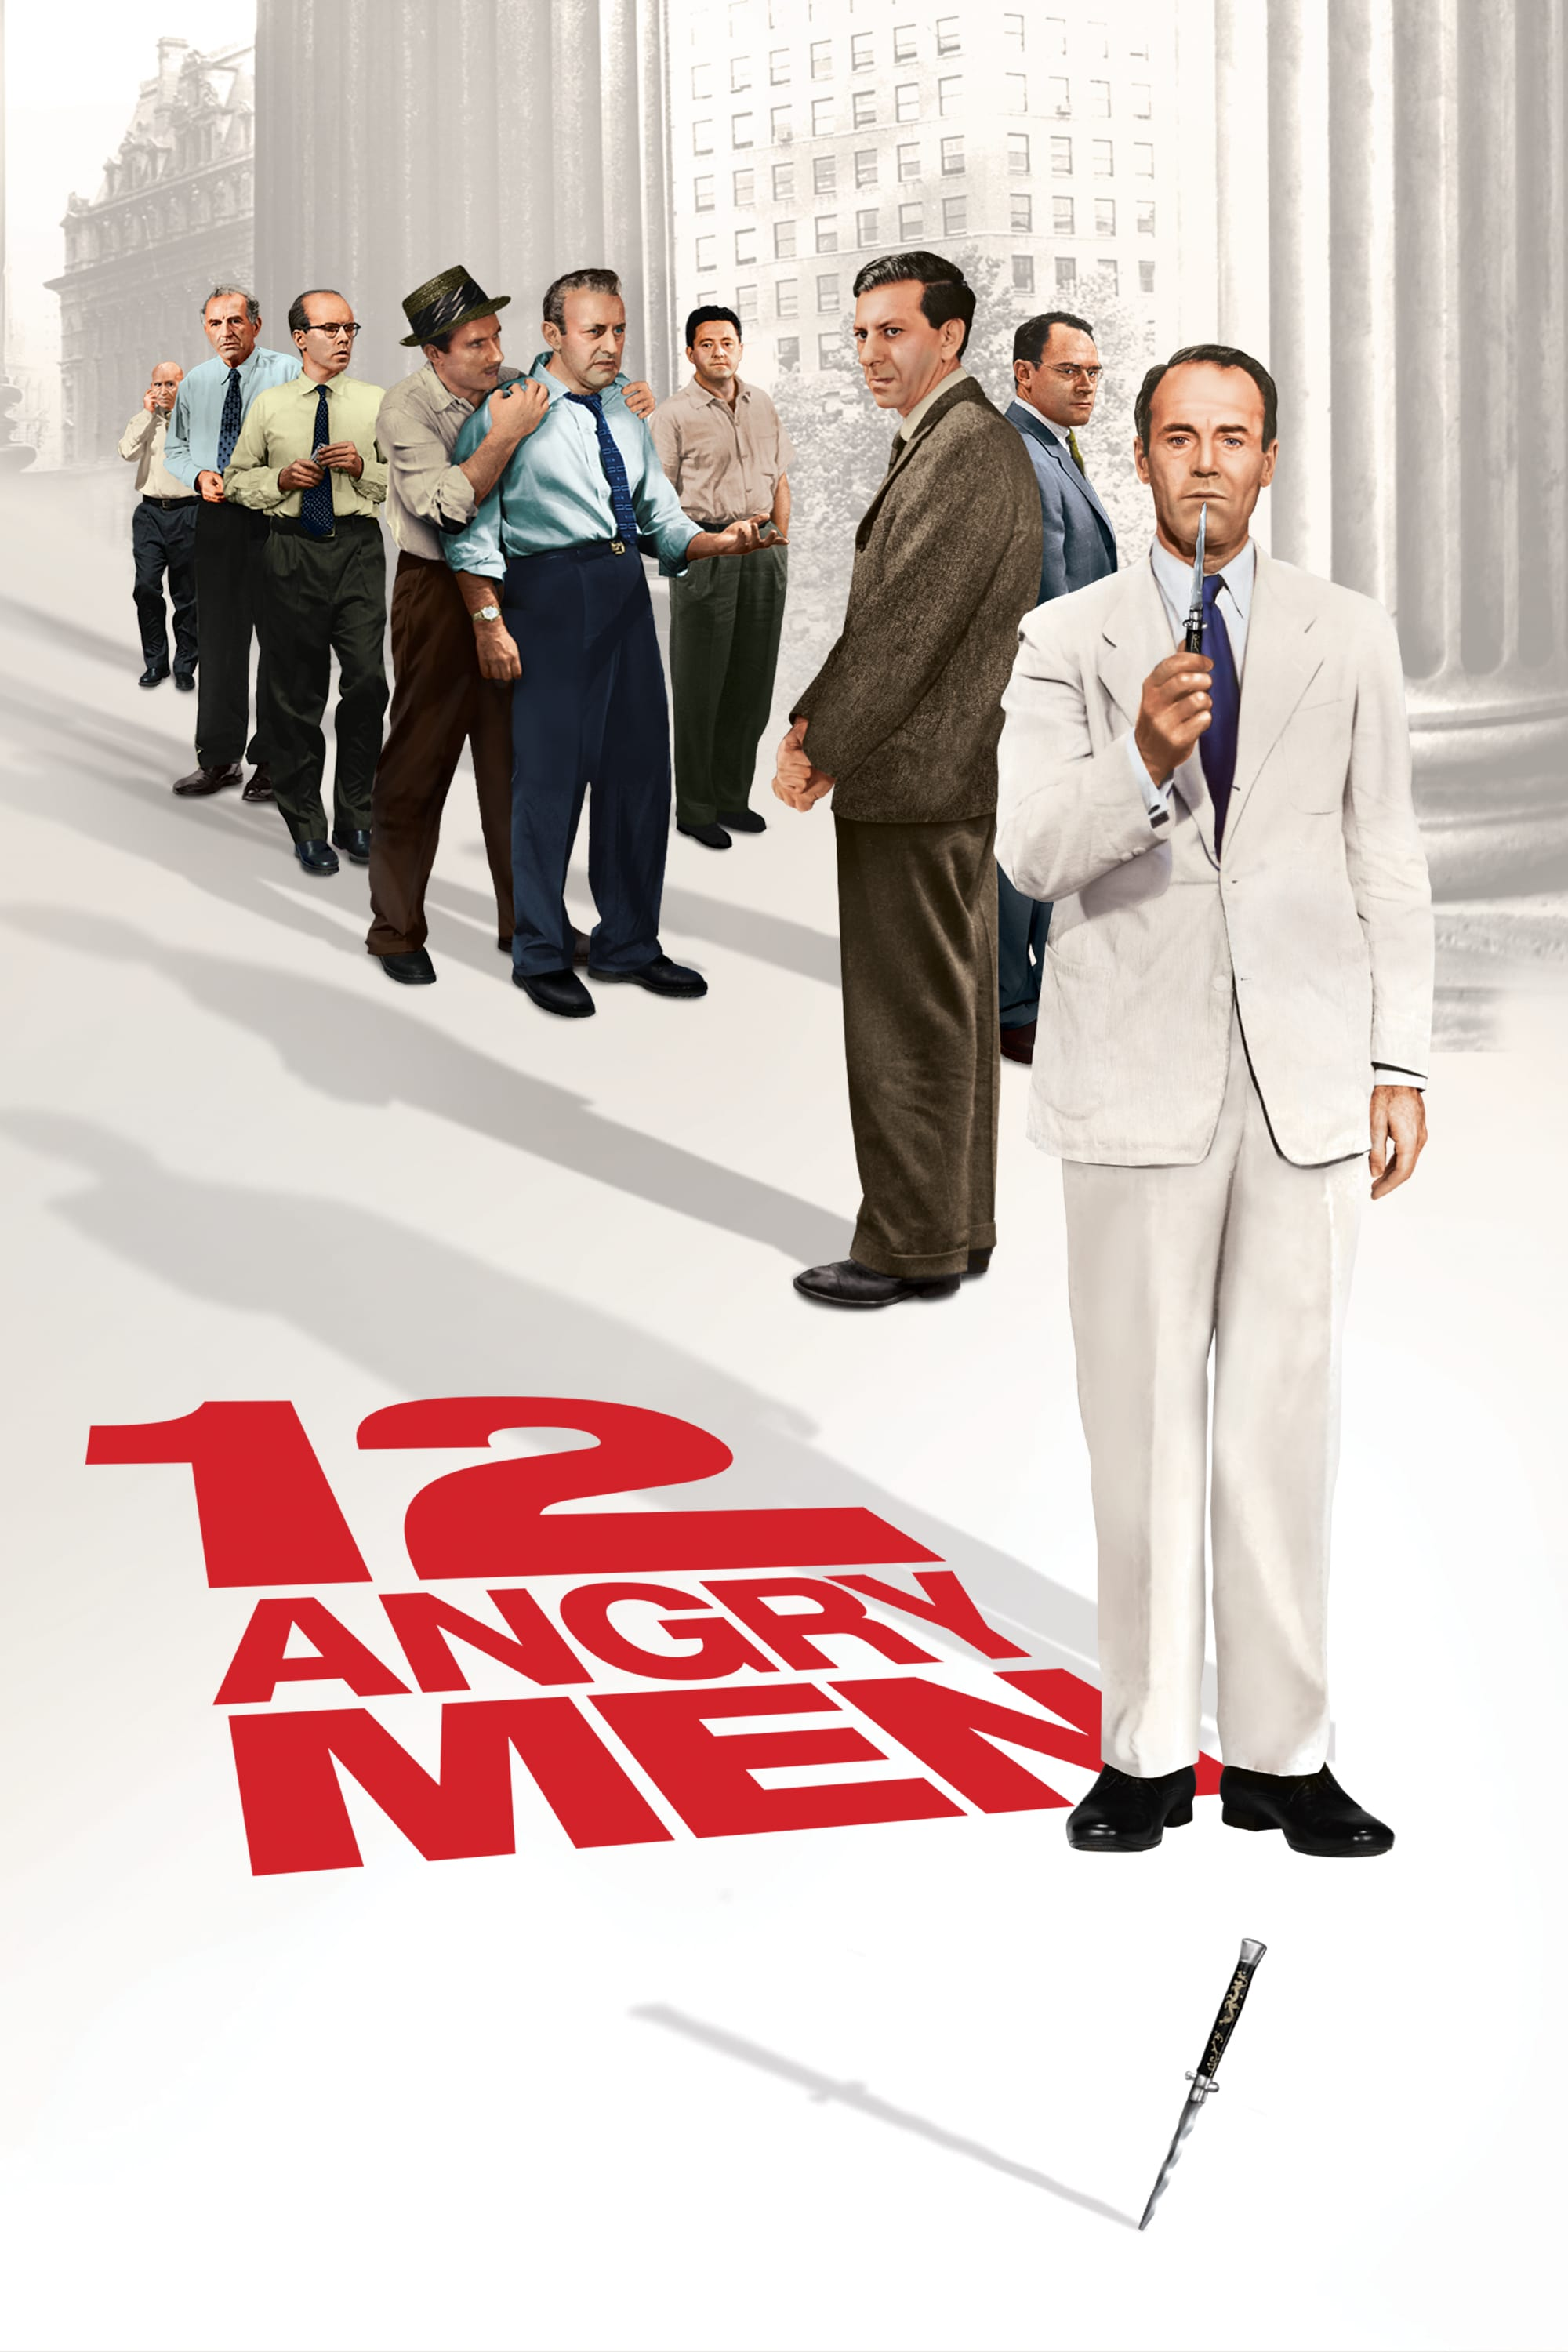 12 Angry Men Wallpapers High Quality Download 2000x3000